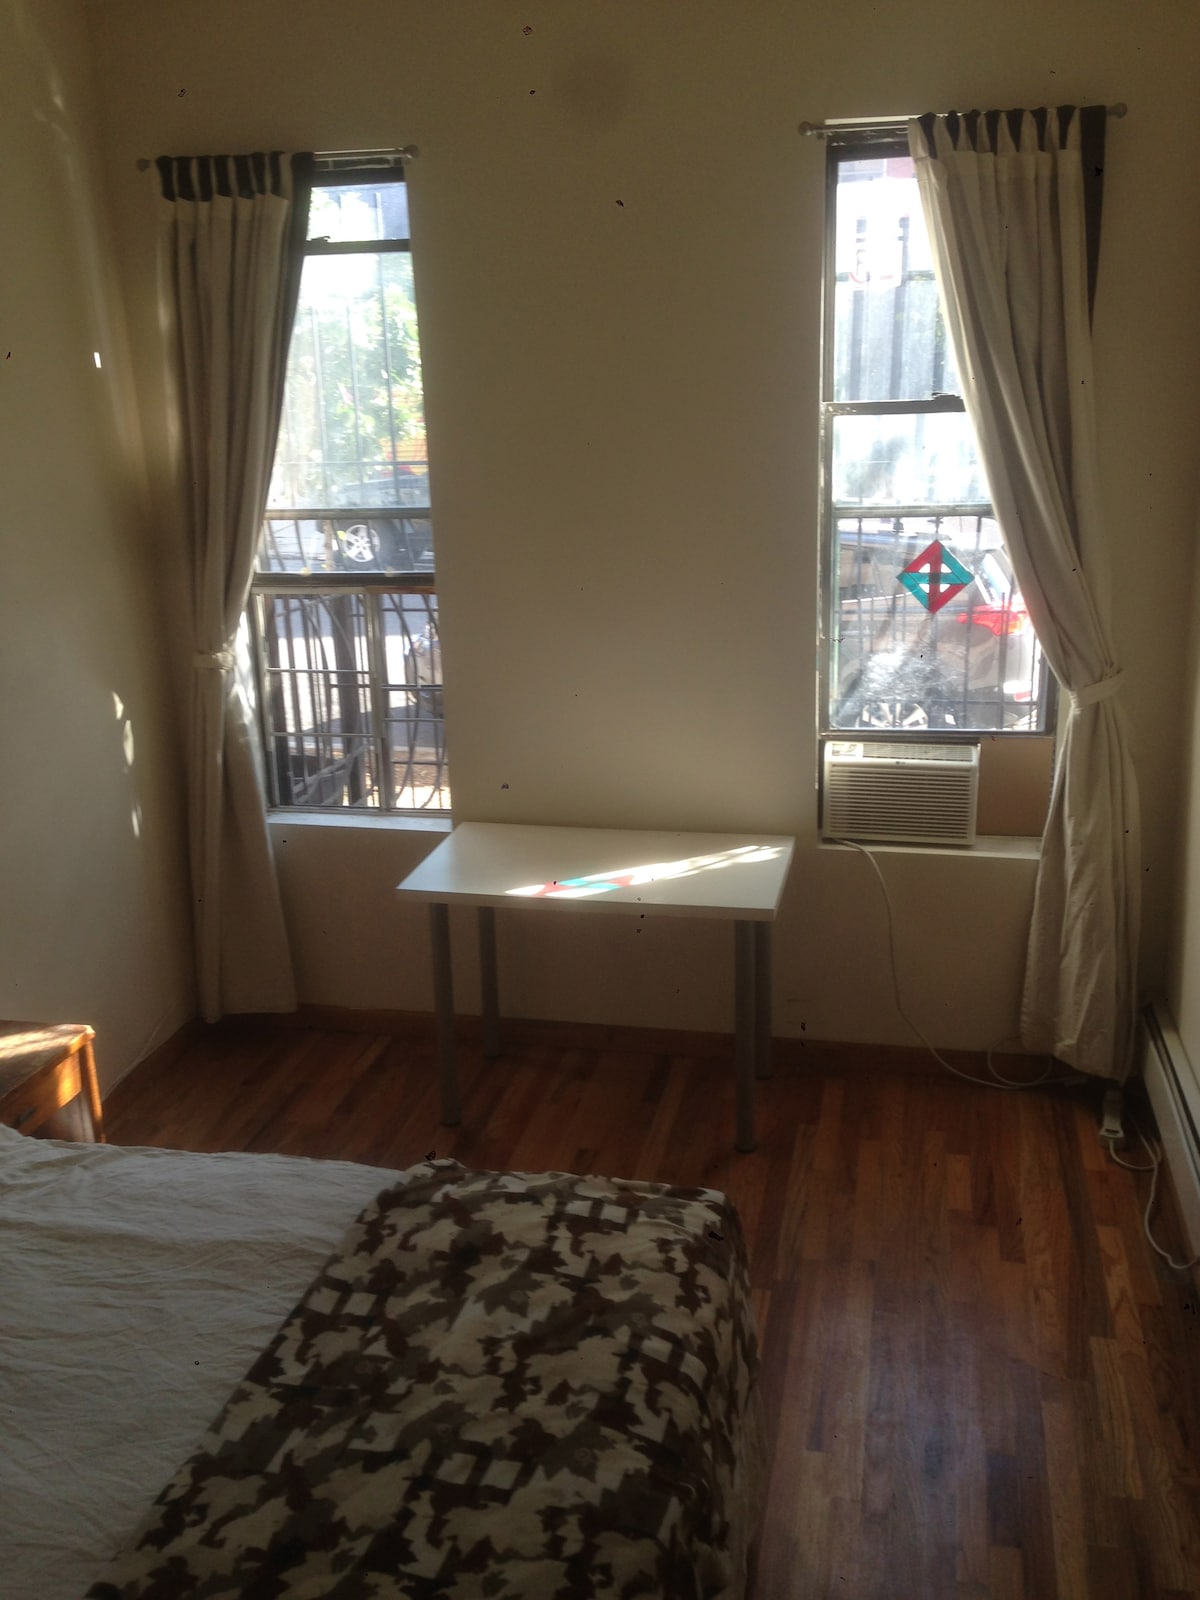 1 Bedroom, Bushwick, Brooklyn